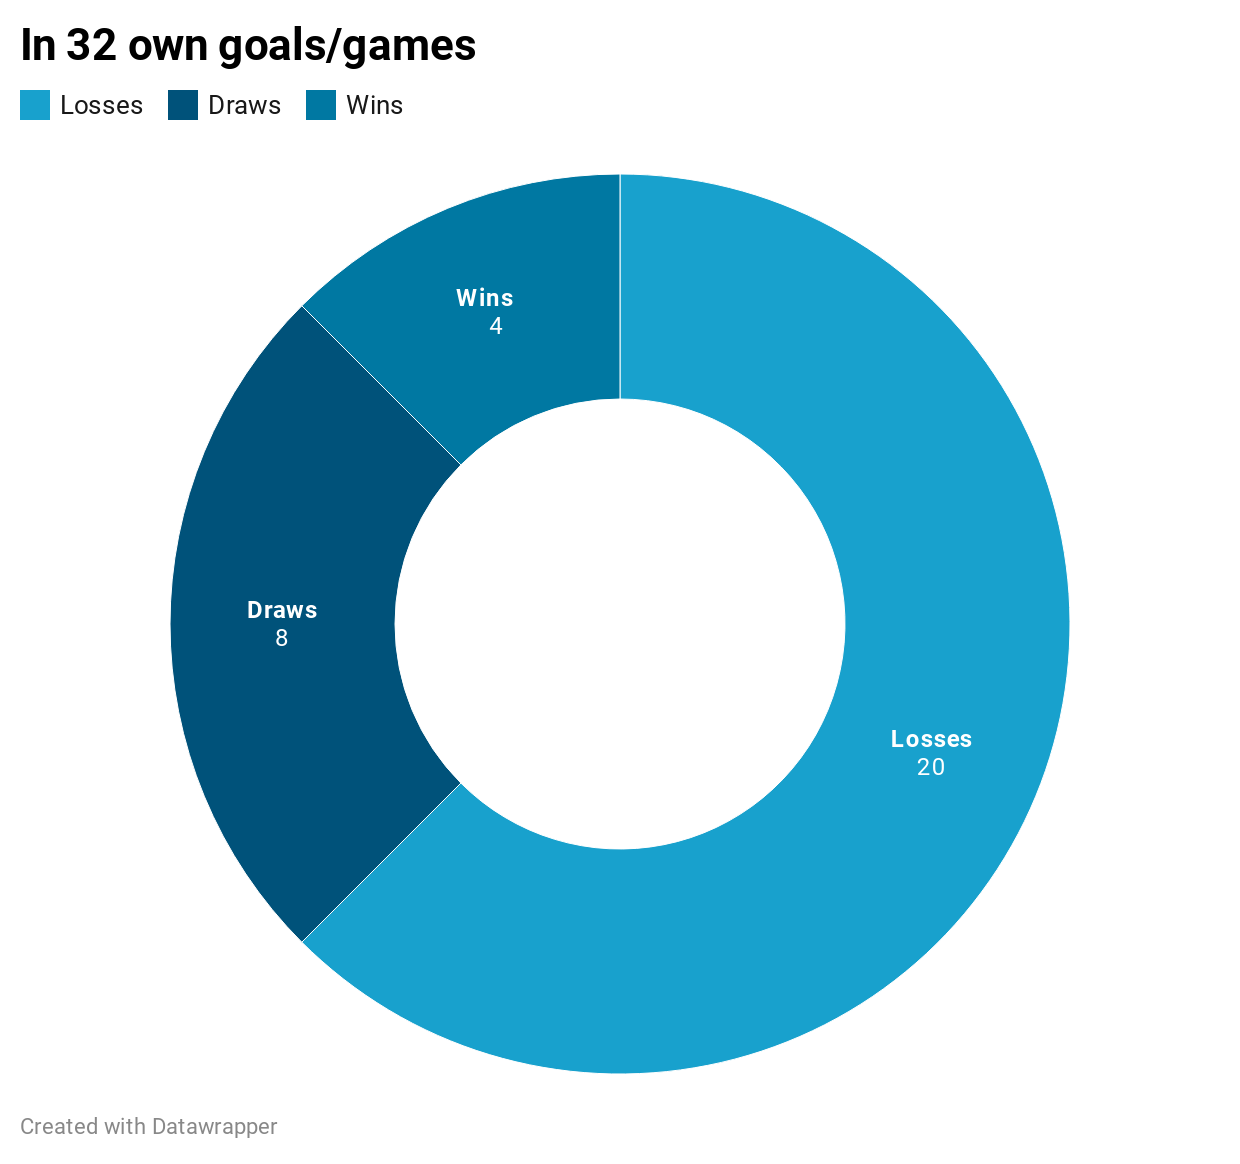 Premier League own goals effect on results